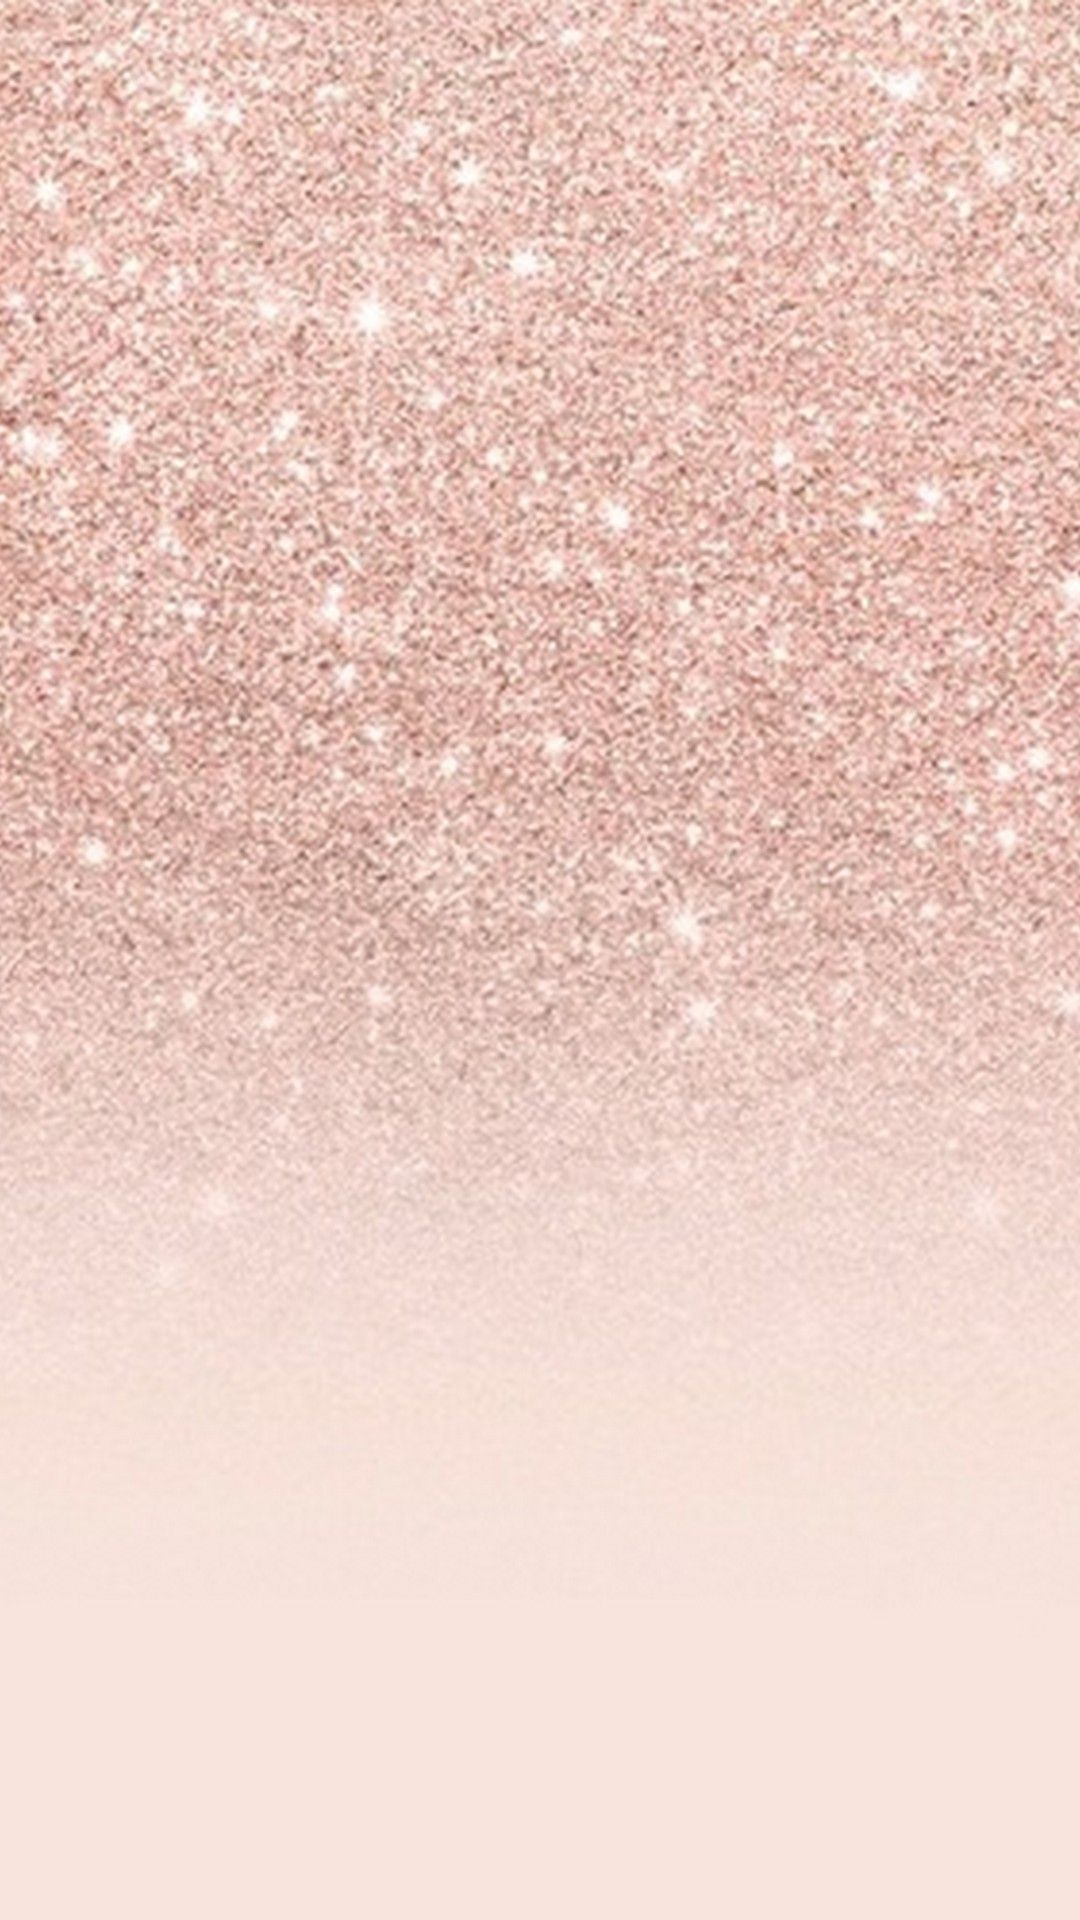 Wallpaper rose gold glitter android is high definition - Background rose gold ...